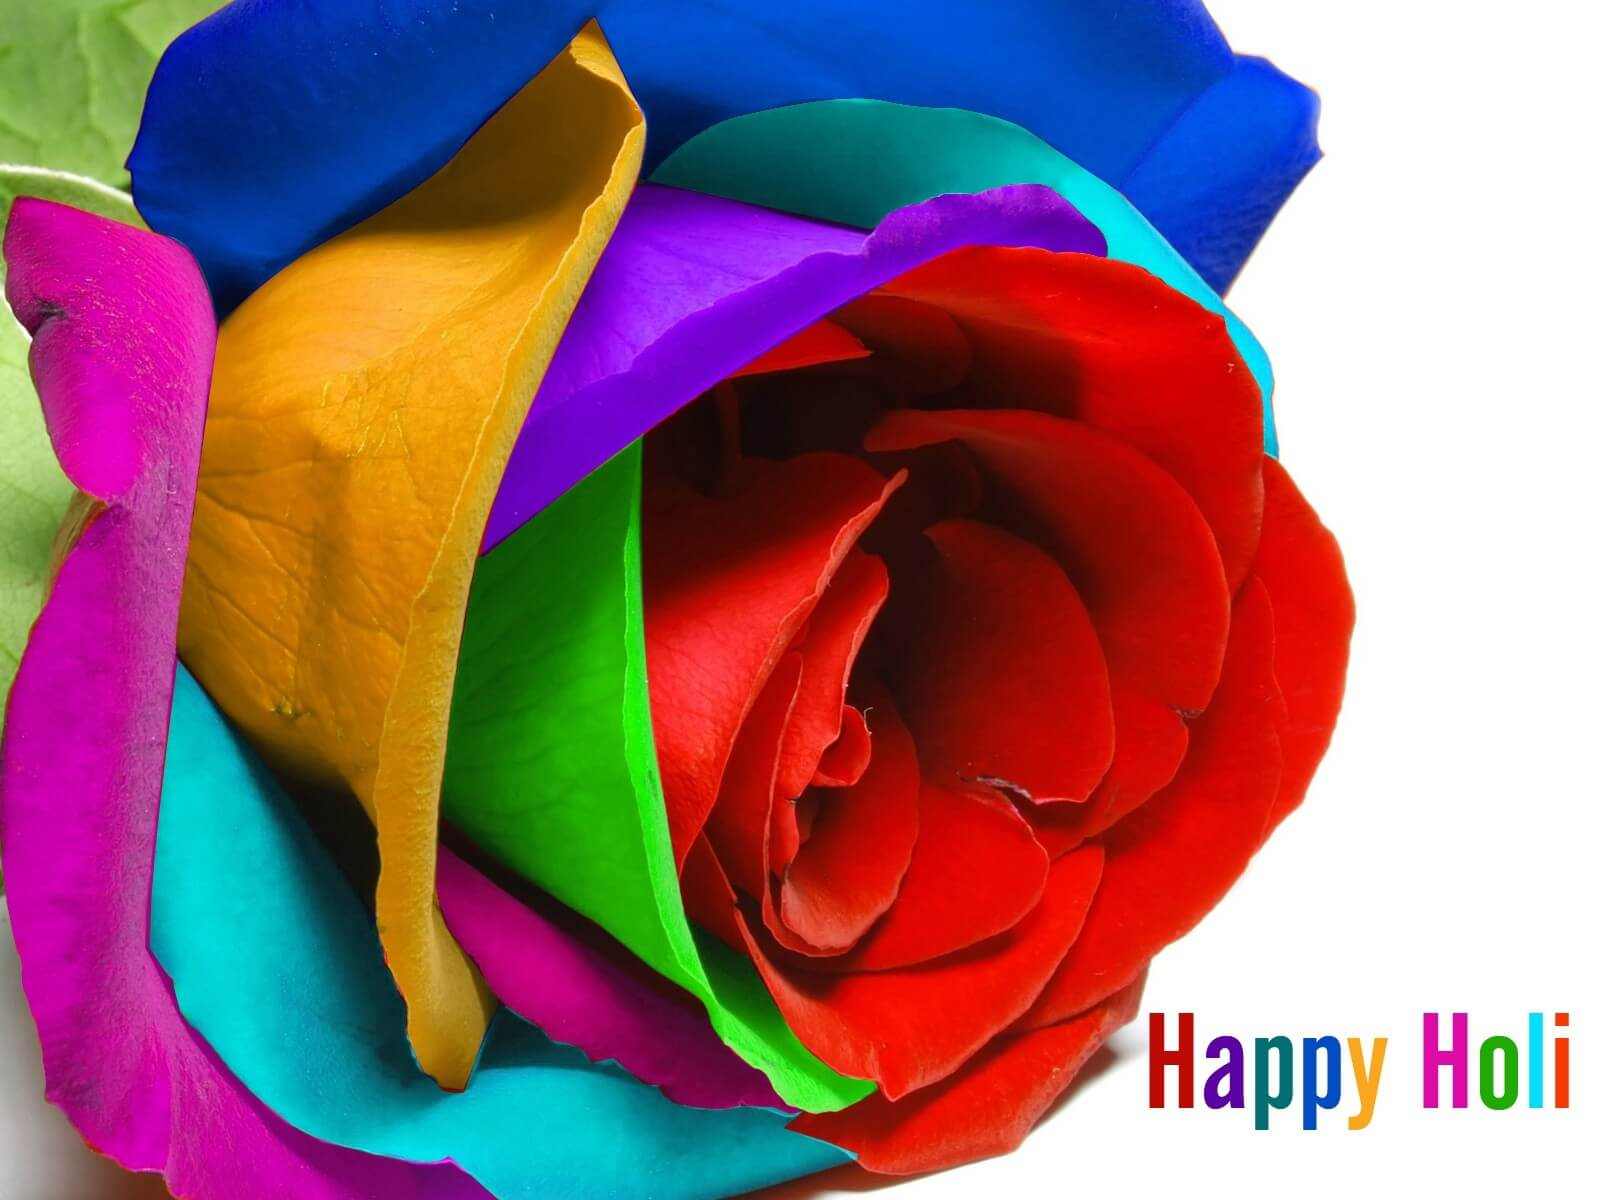 colorful rose happy holi wishes hd wallpaper